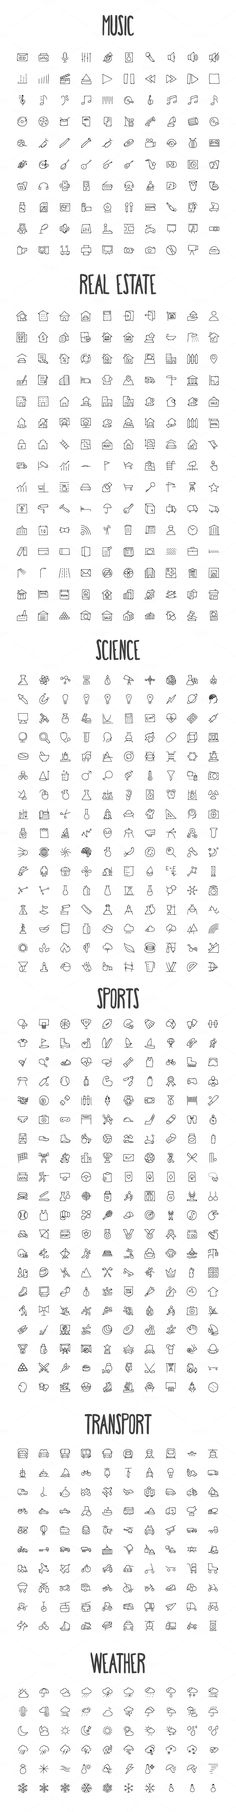 2440 Hand Drawn Doodle Icons Bundle by creativestall on Crea.- 2440 Hand Drawn Doodle Icons Bundle by creativestall on Creative Market - Doodle Drawings, Doodle Art, Doodle Frames, Music Doodle, Doodle Tattoo, Tattoo Drawings, Bullet Journal Inspiration, Small Tattoos, Girly Tattoos